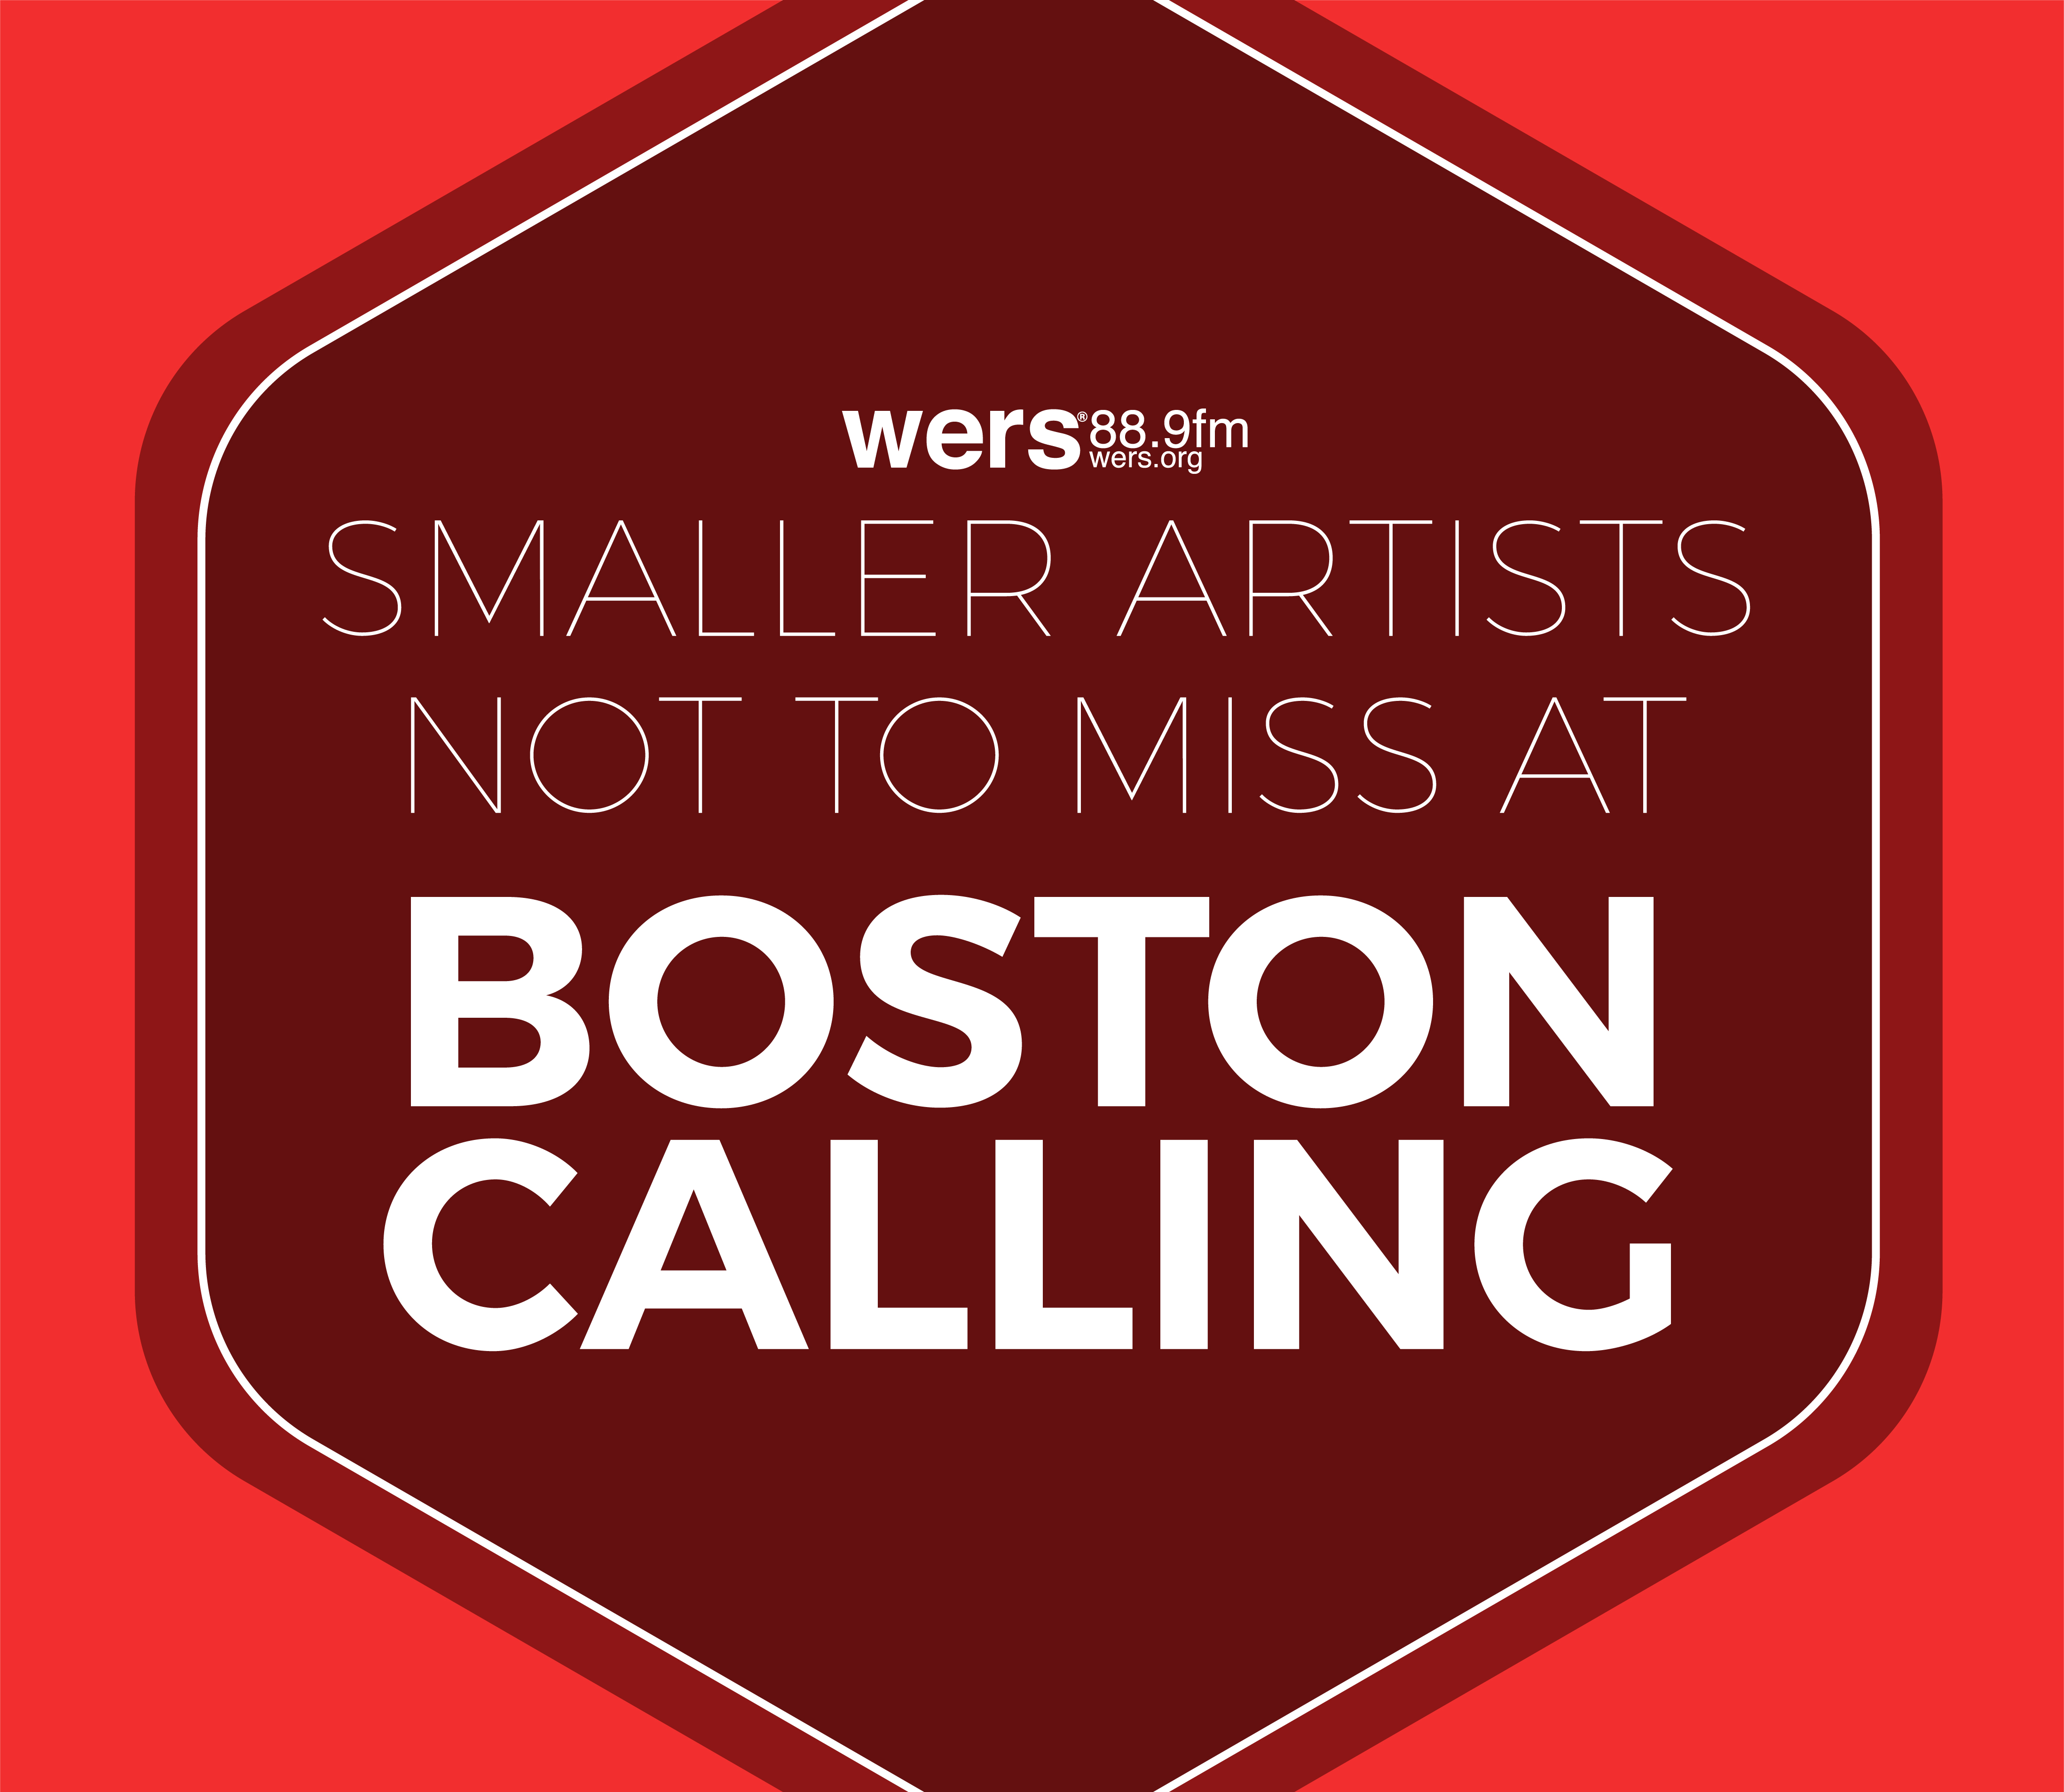 Smaller Artists Not to Miss at Boston Calling